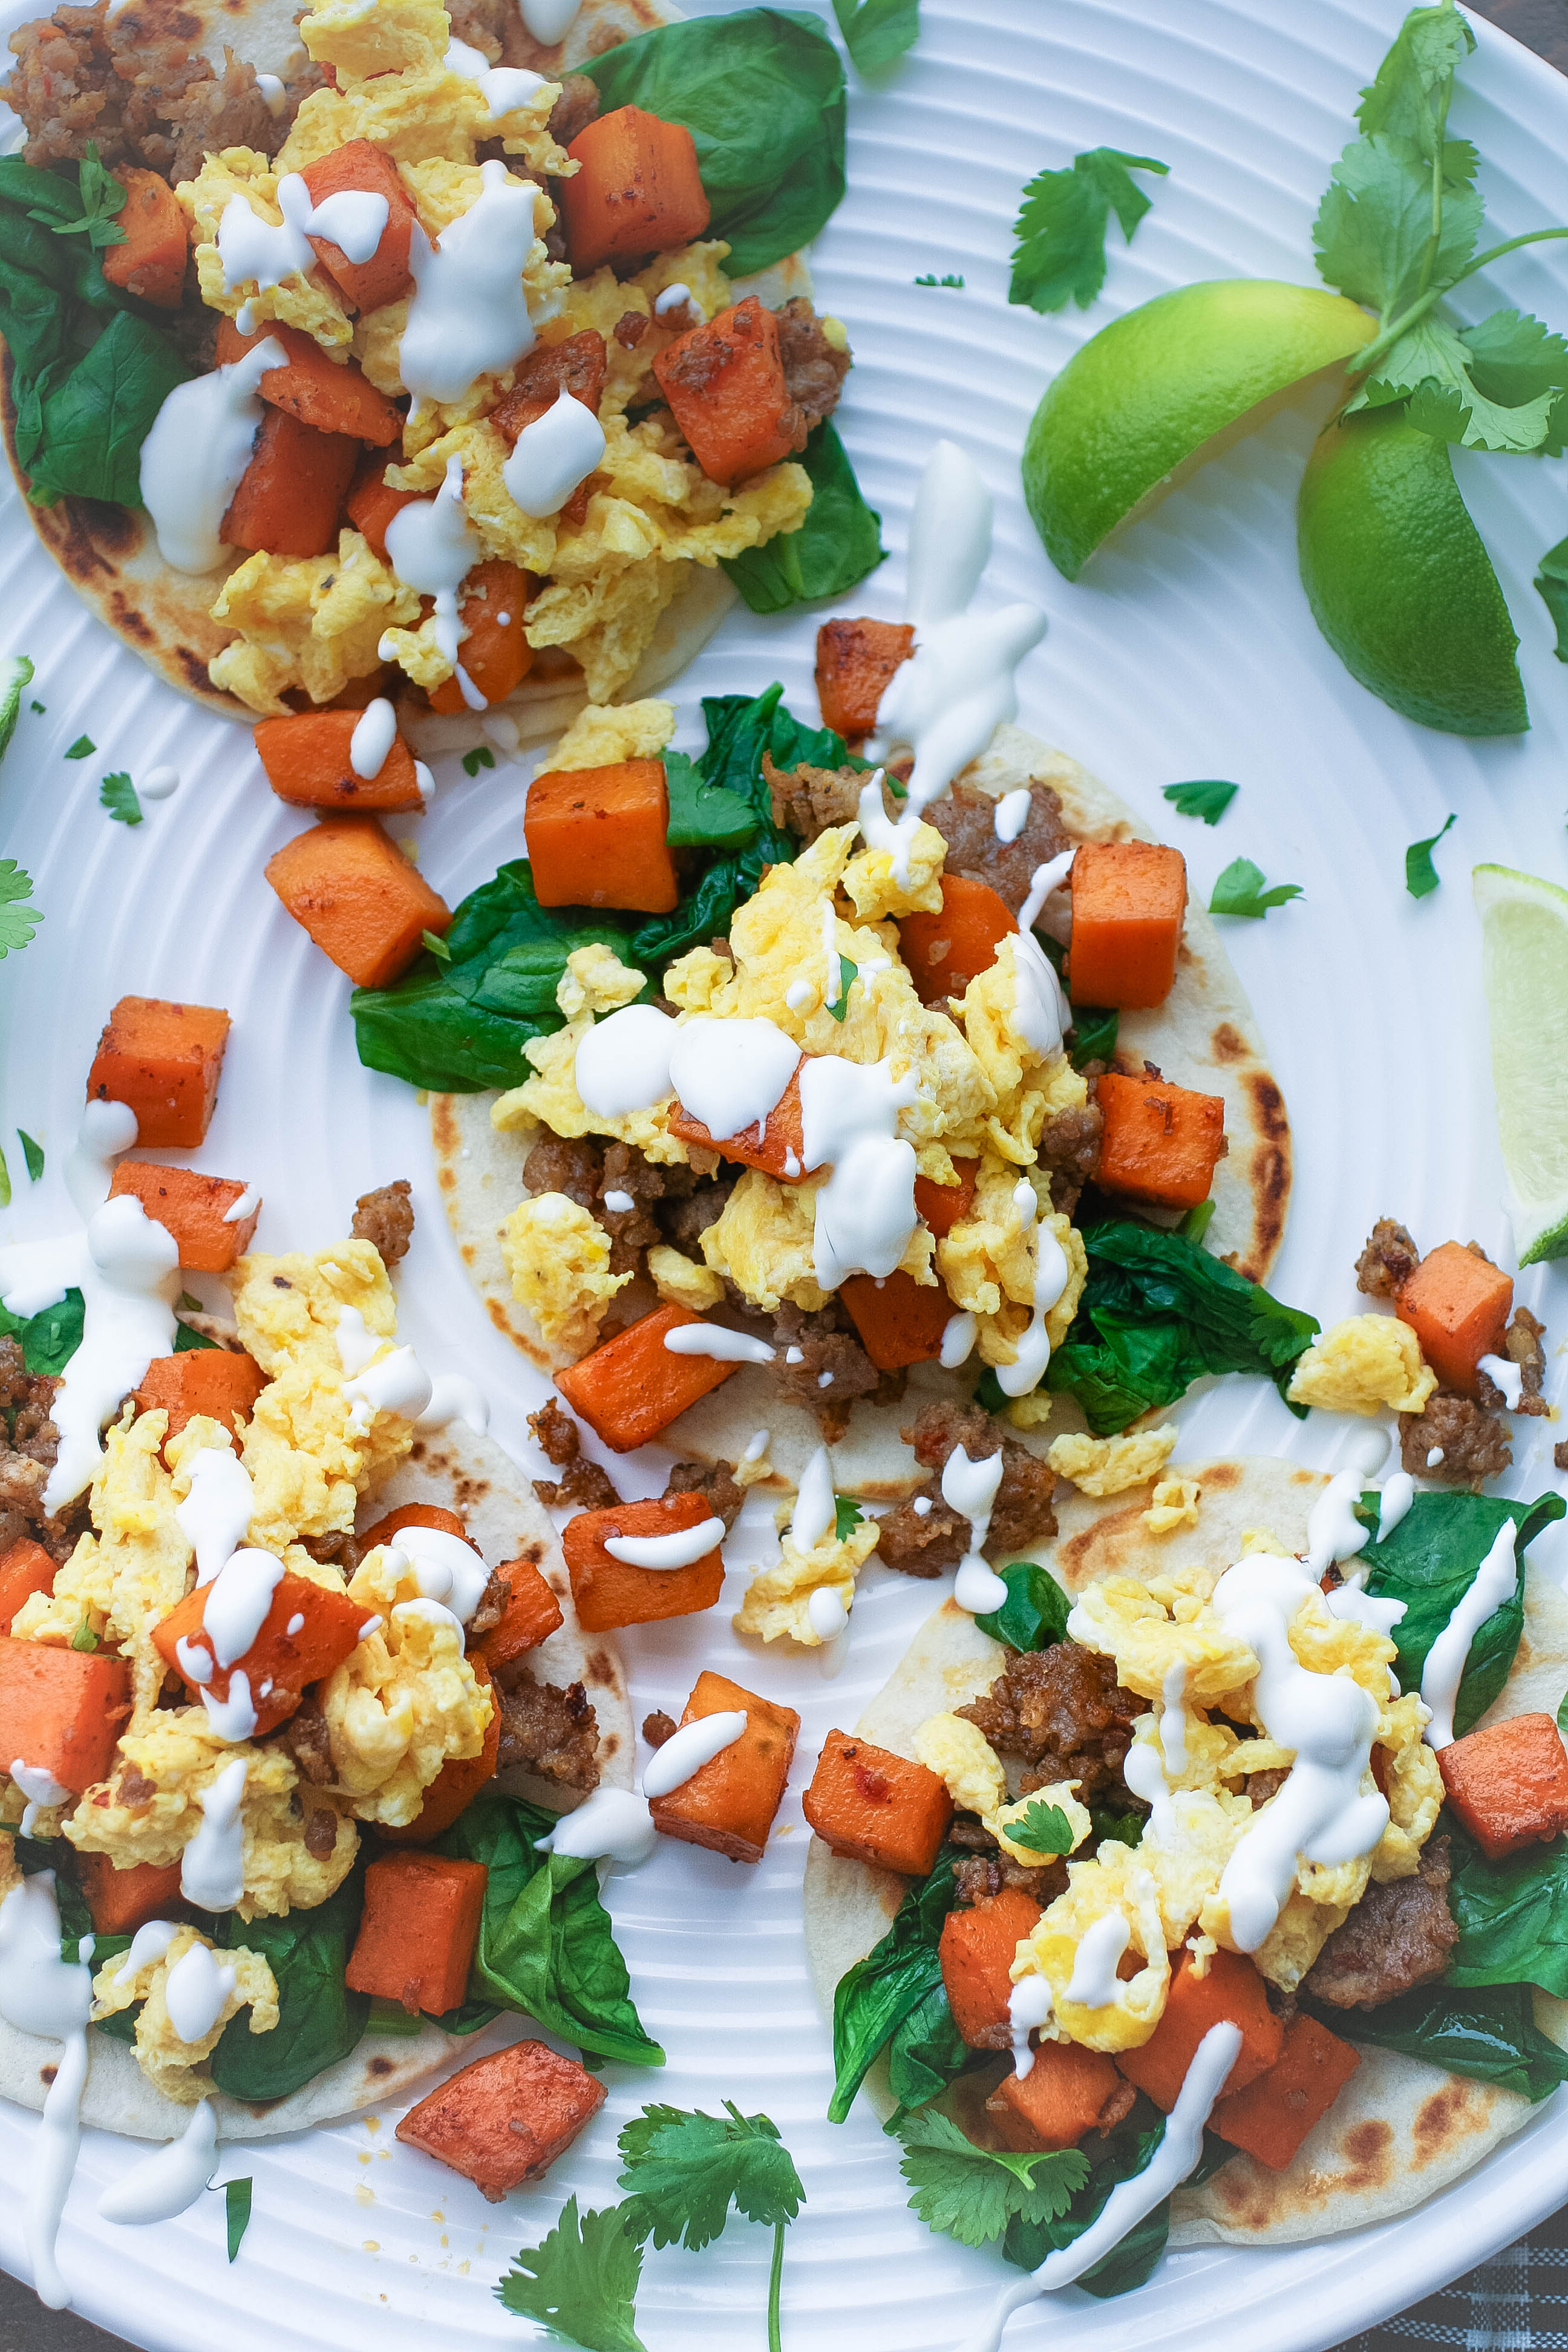 Breakfast Tacos with Sweet Potatoes, Sausage, Spinach, and Lime Crema make a fabulous meal! Breakfast Tacos with Sweet Potatoes, Sausage, Spinach, and Lime Crema are tasty and they make a fun meal!